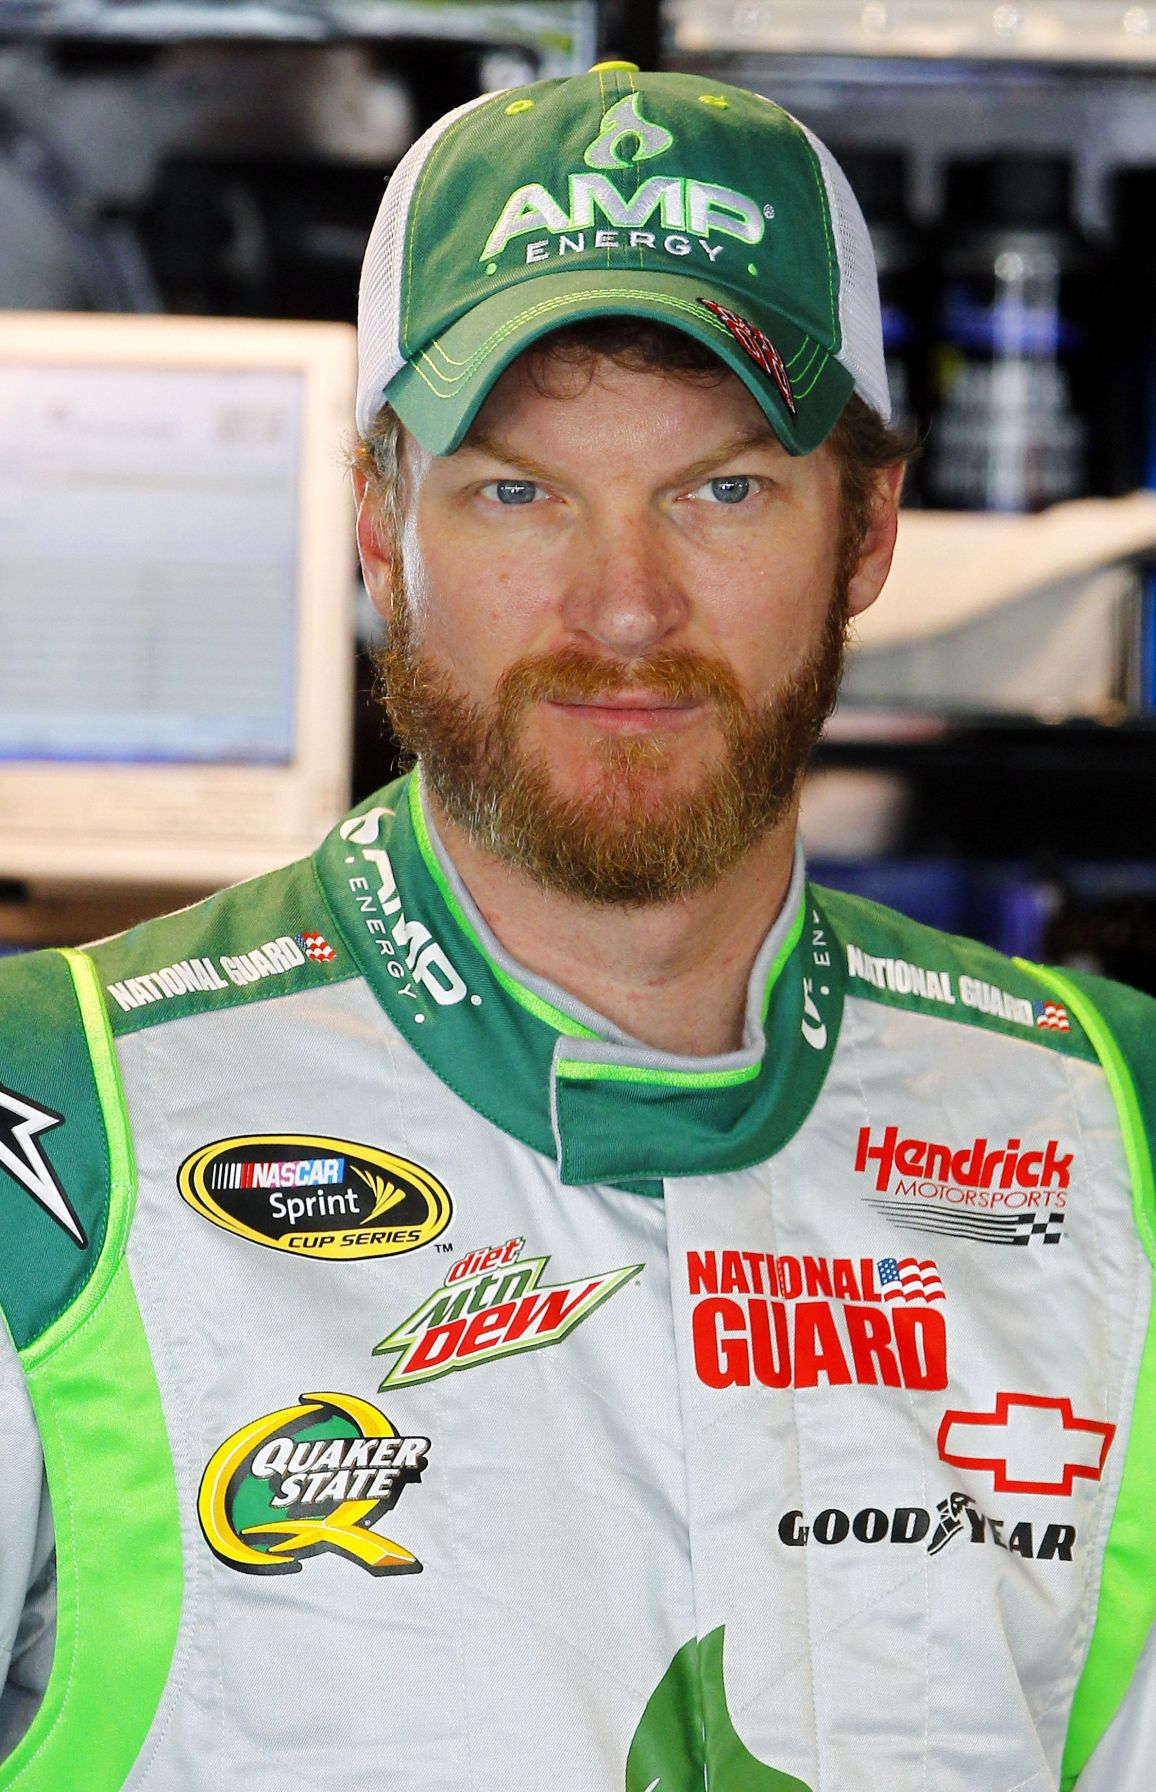 Earnhardt emerges as new points leader